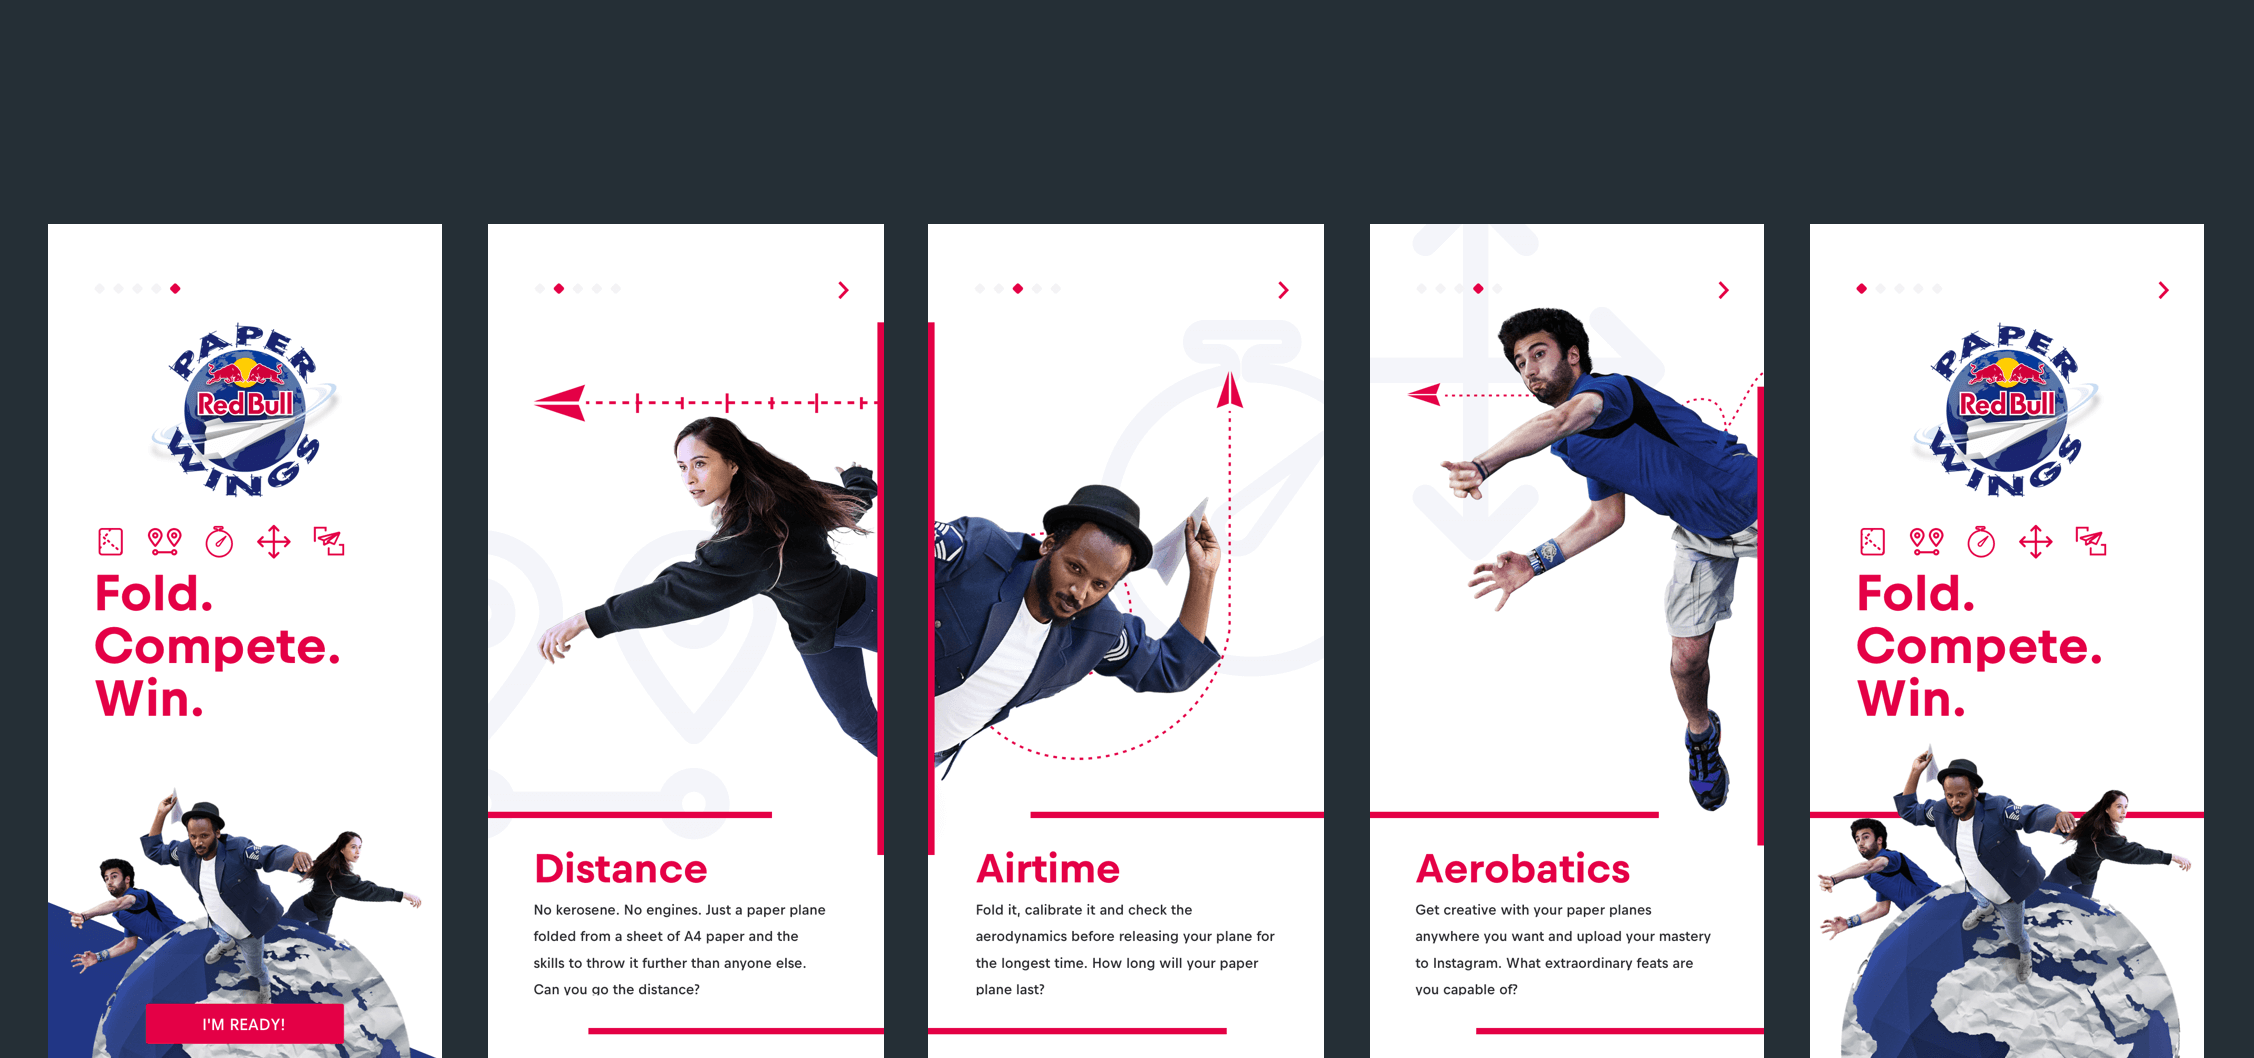 The onboarding screens of the mobile app